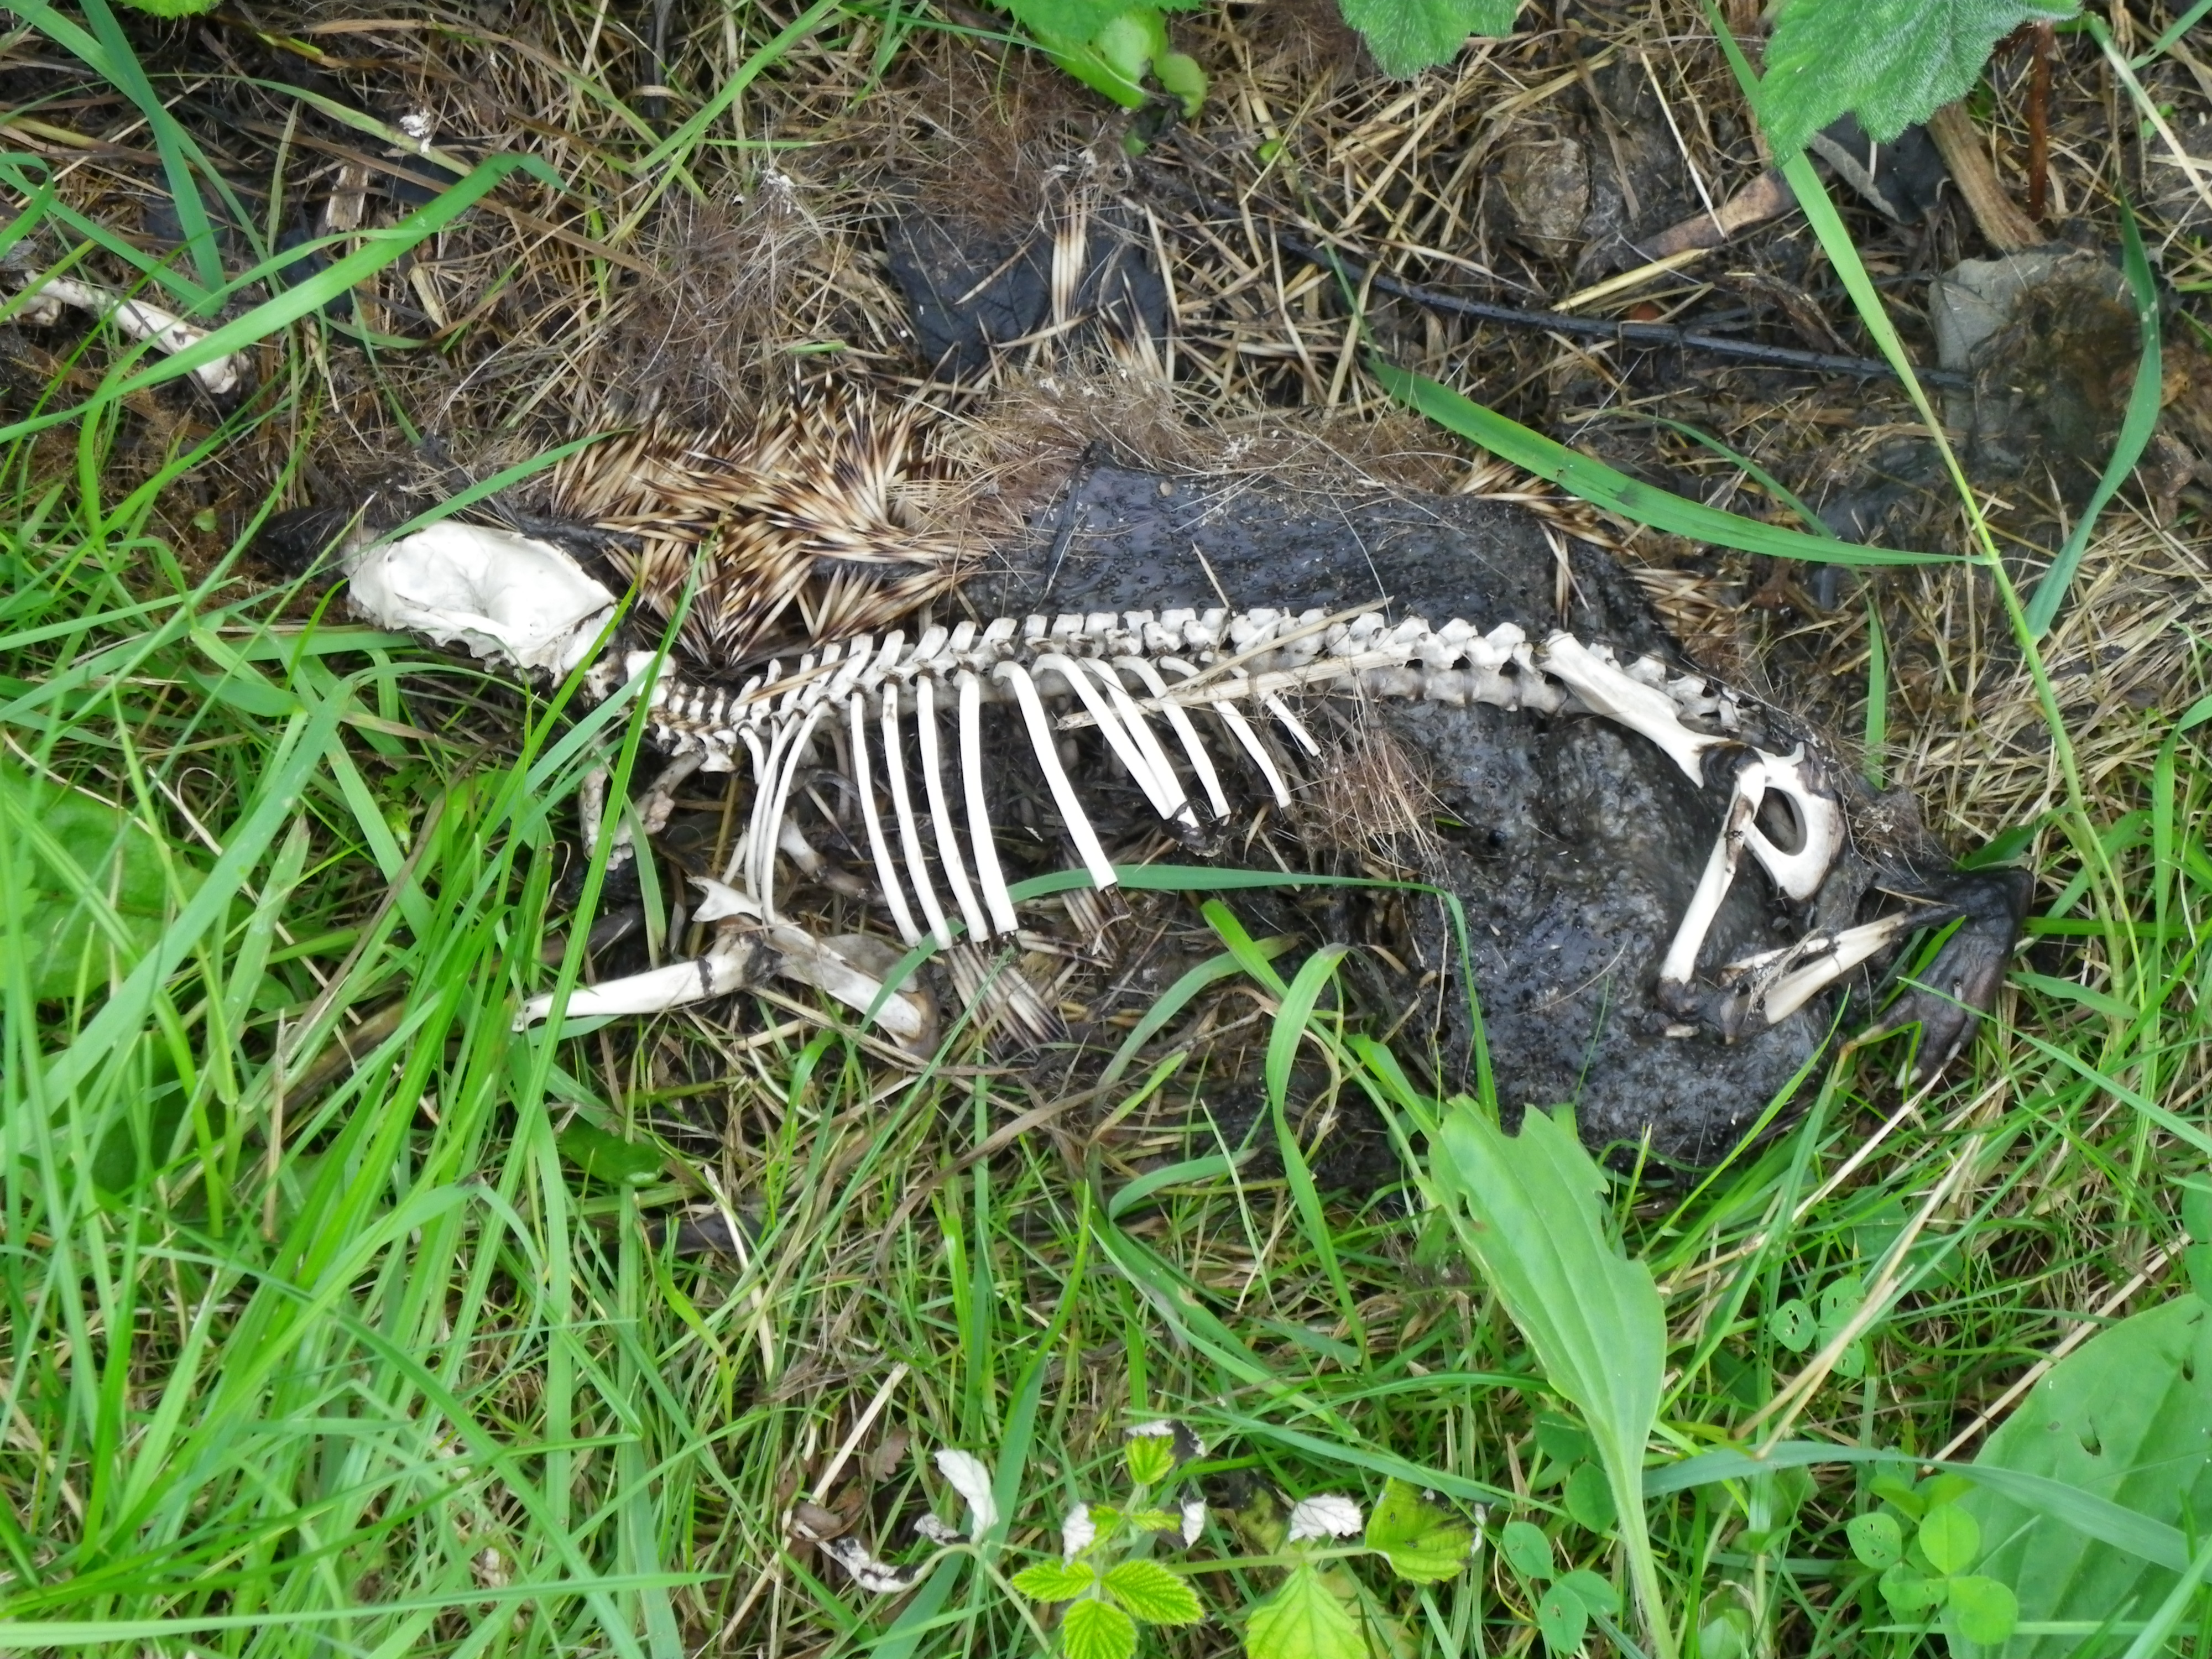 A Picture Of A Dead Hedgehog With Its Skeleton Structure